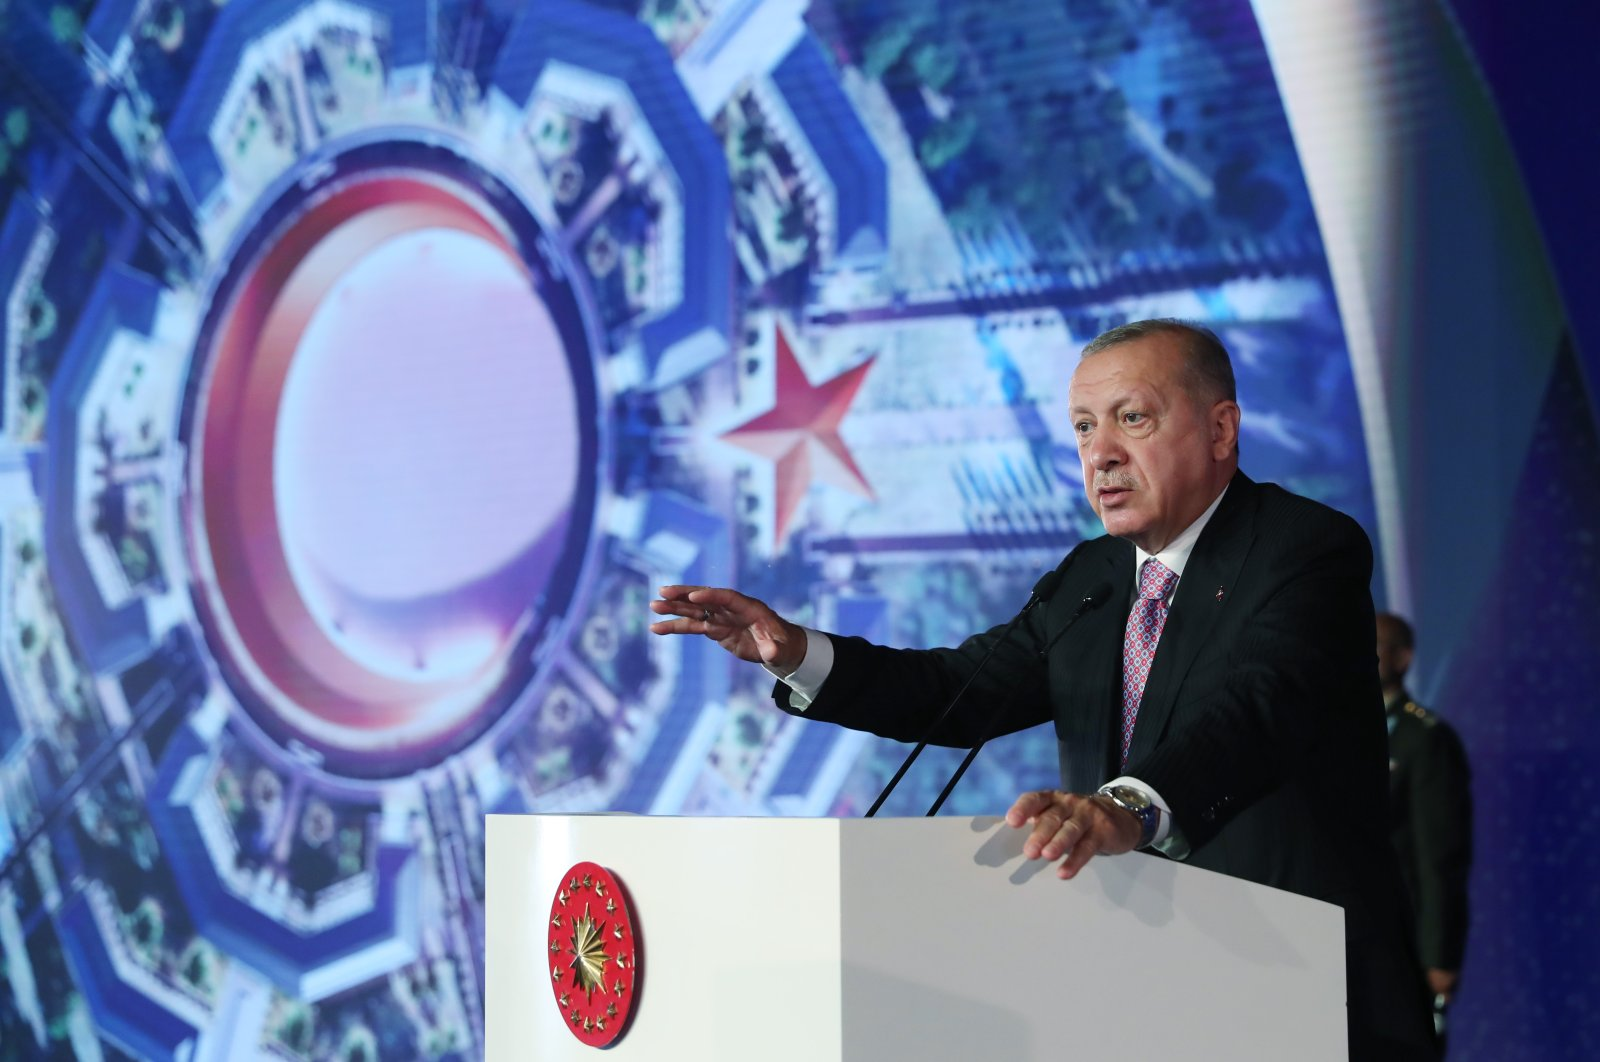 """President Recep Tayyip Erdoğan speaks at the ground-breaking ceremony for the """"Crescent Star"""" project, in the capital Ankara, Turkey, Aug. 30, 2021. (AA PHOTO)"""